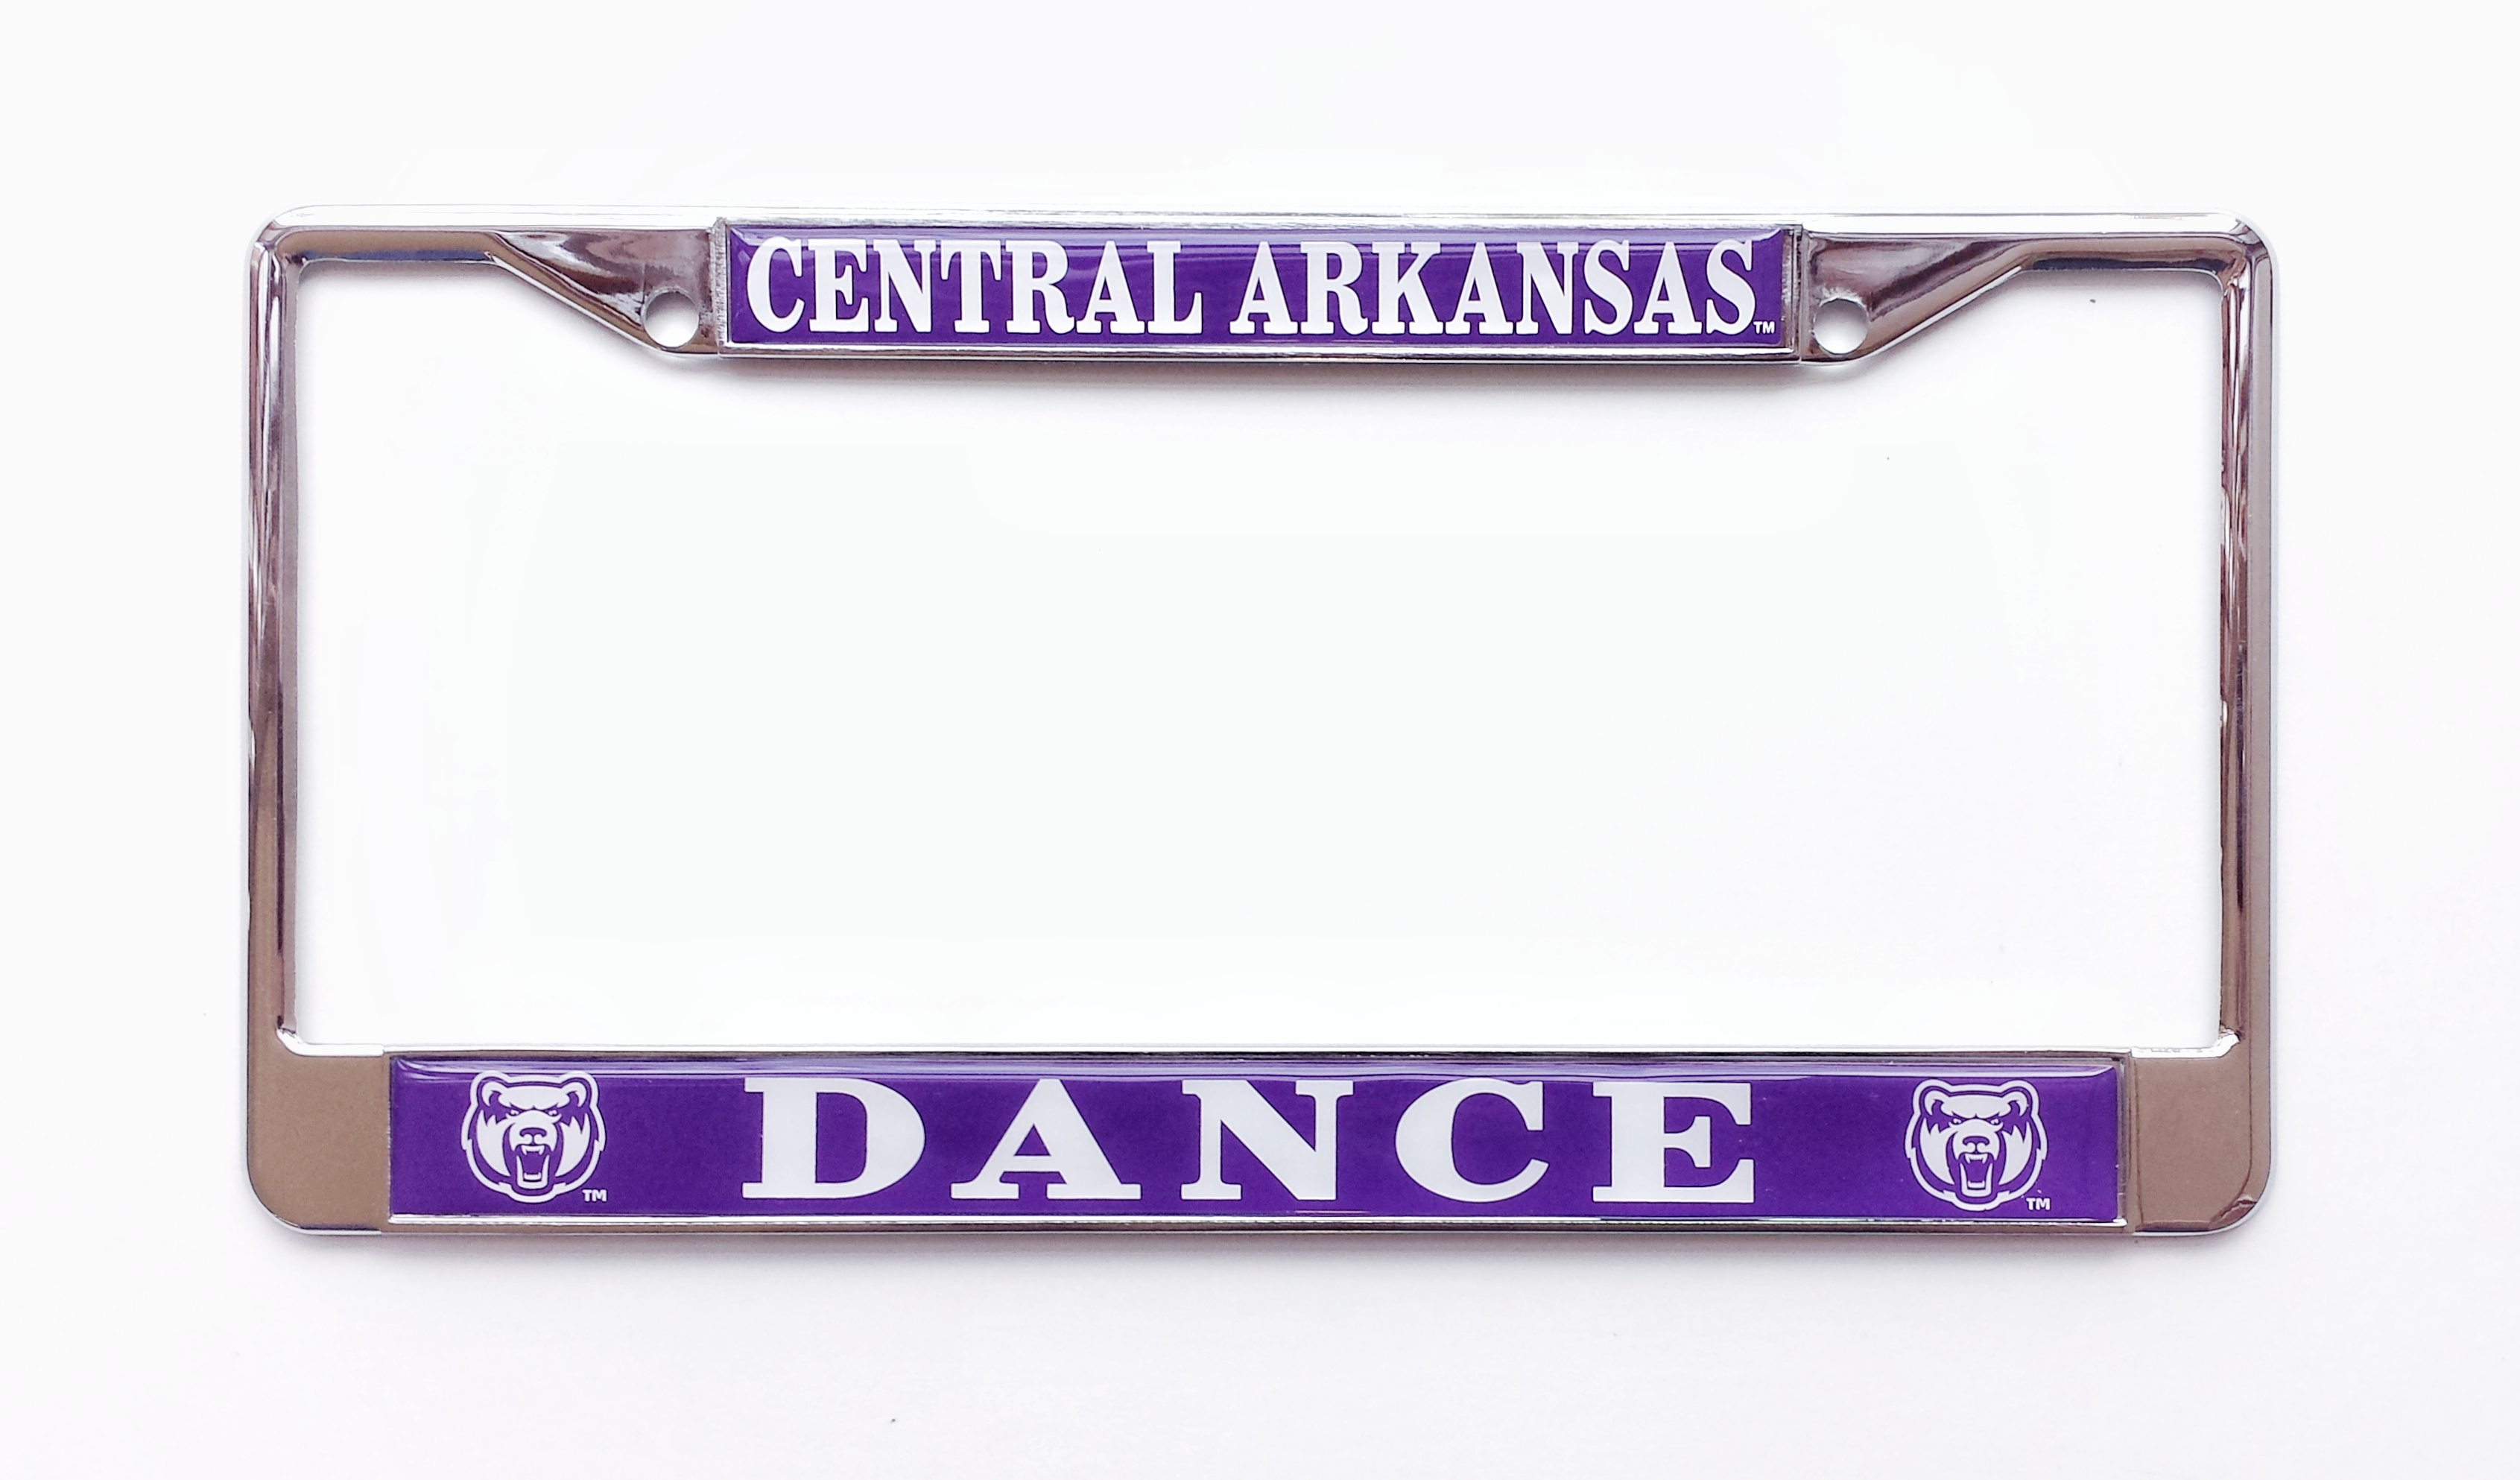 Central Arkansas Dance License Frame